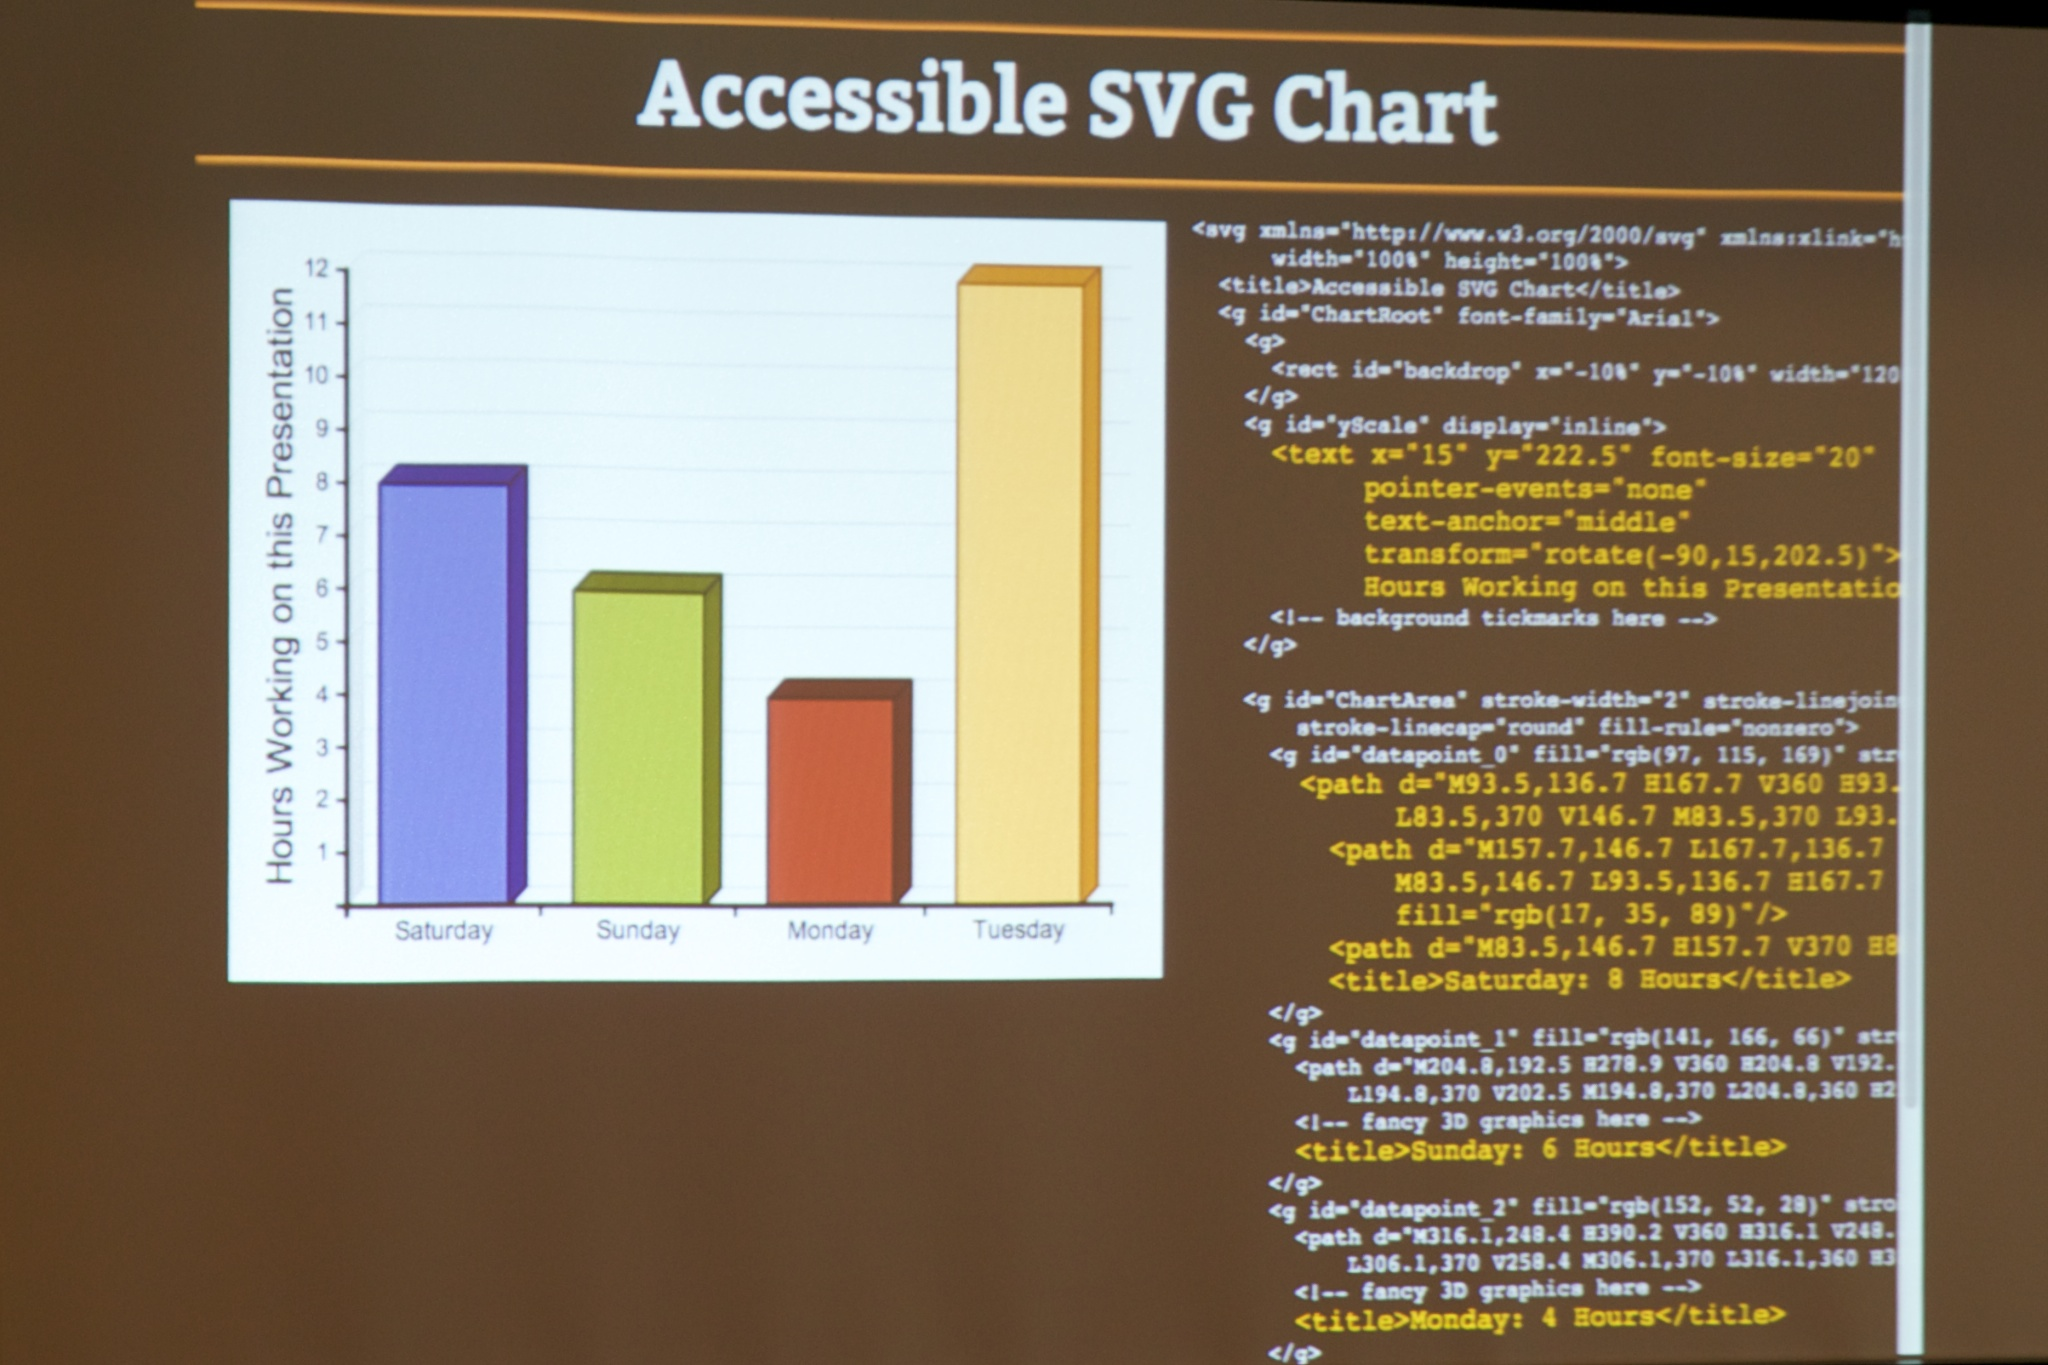 An accessible SVG chart with the underlying code showing,